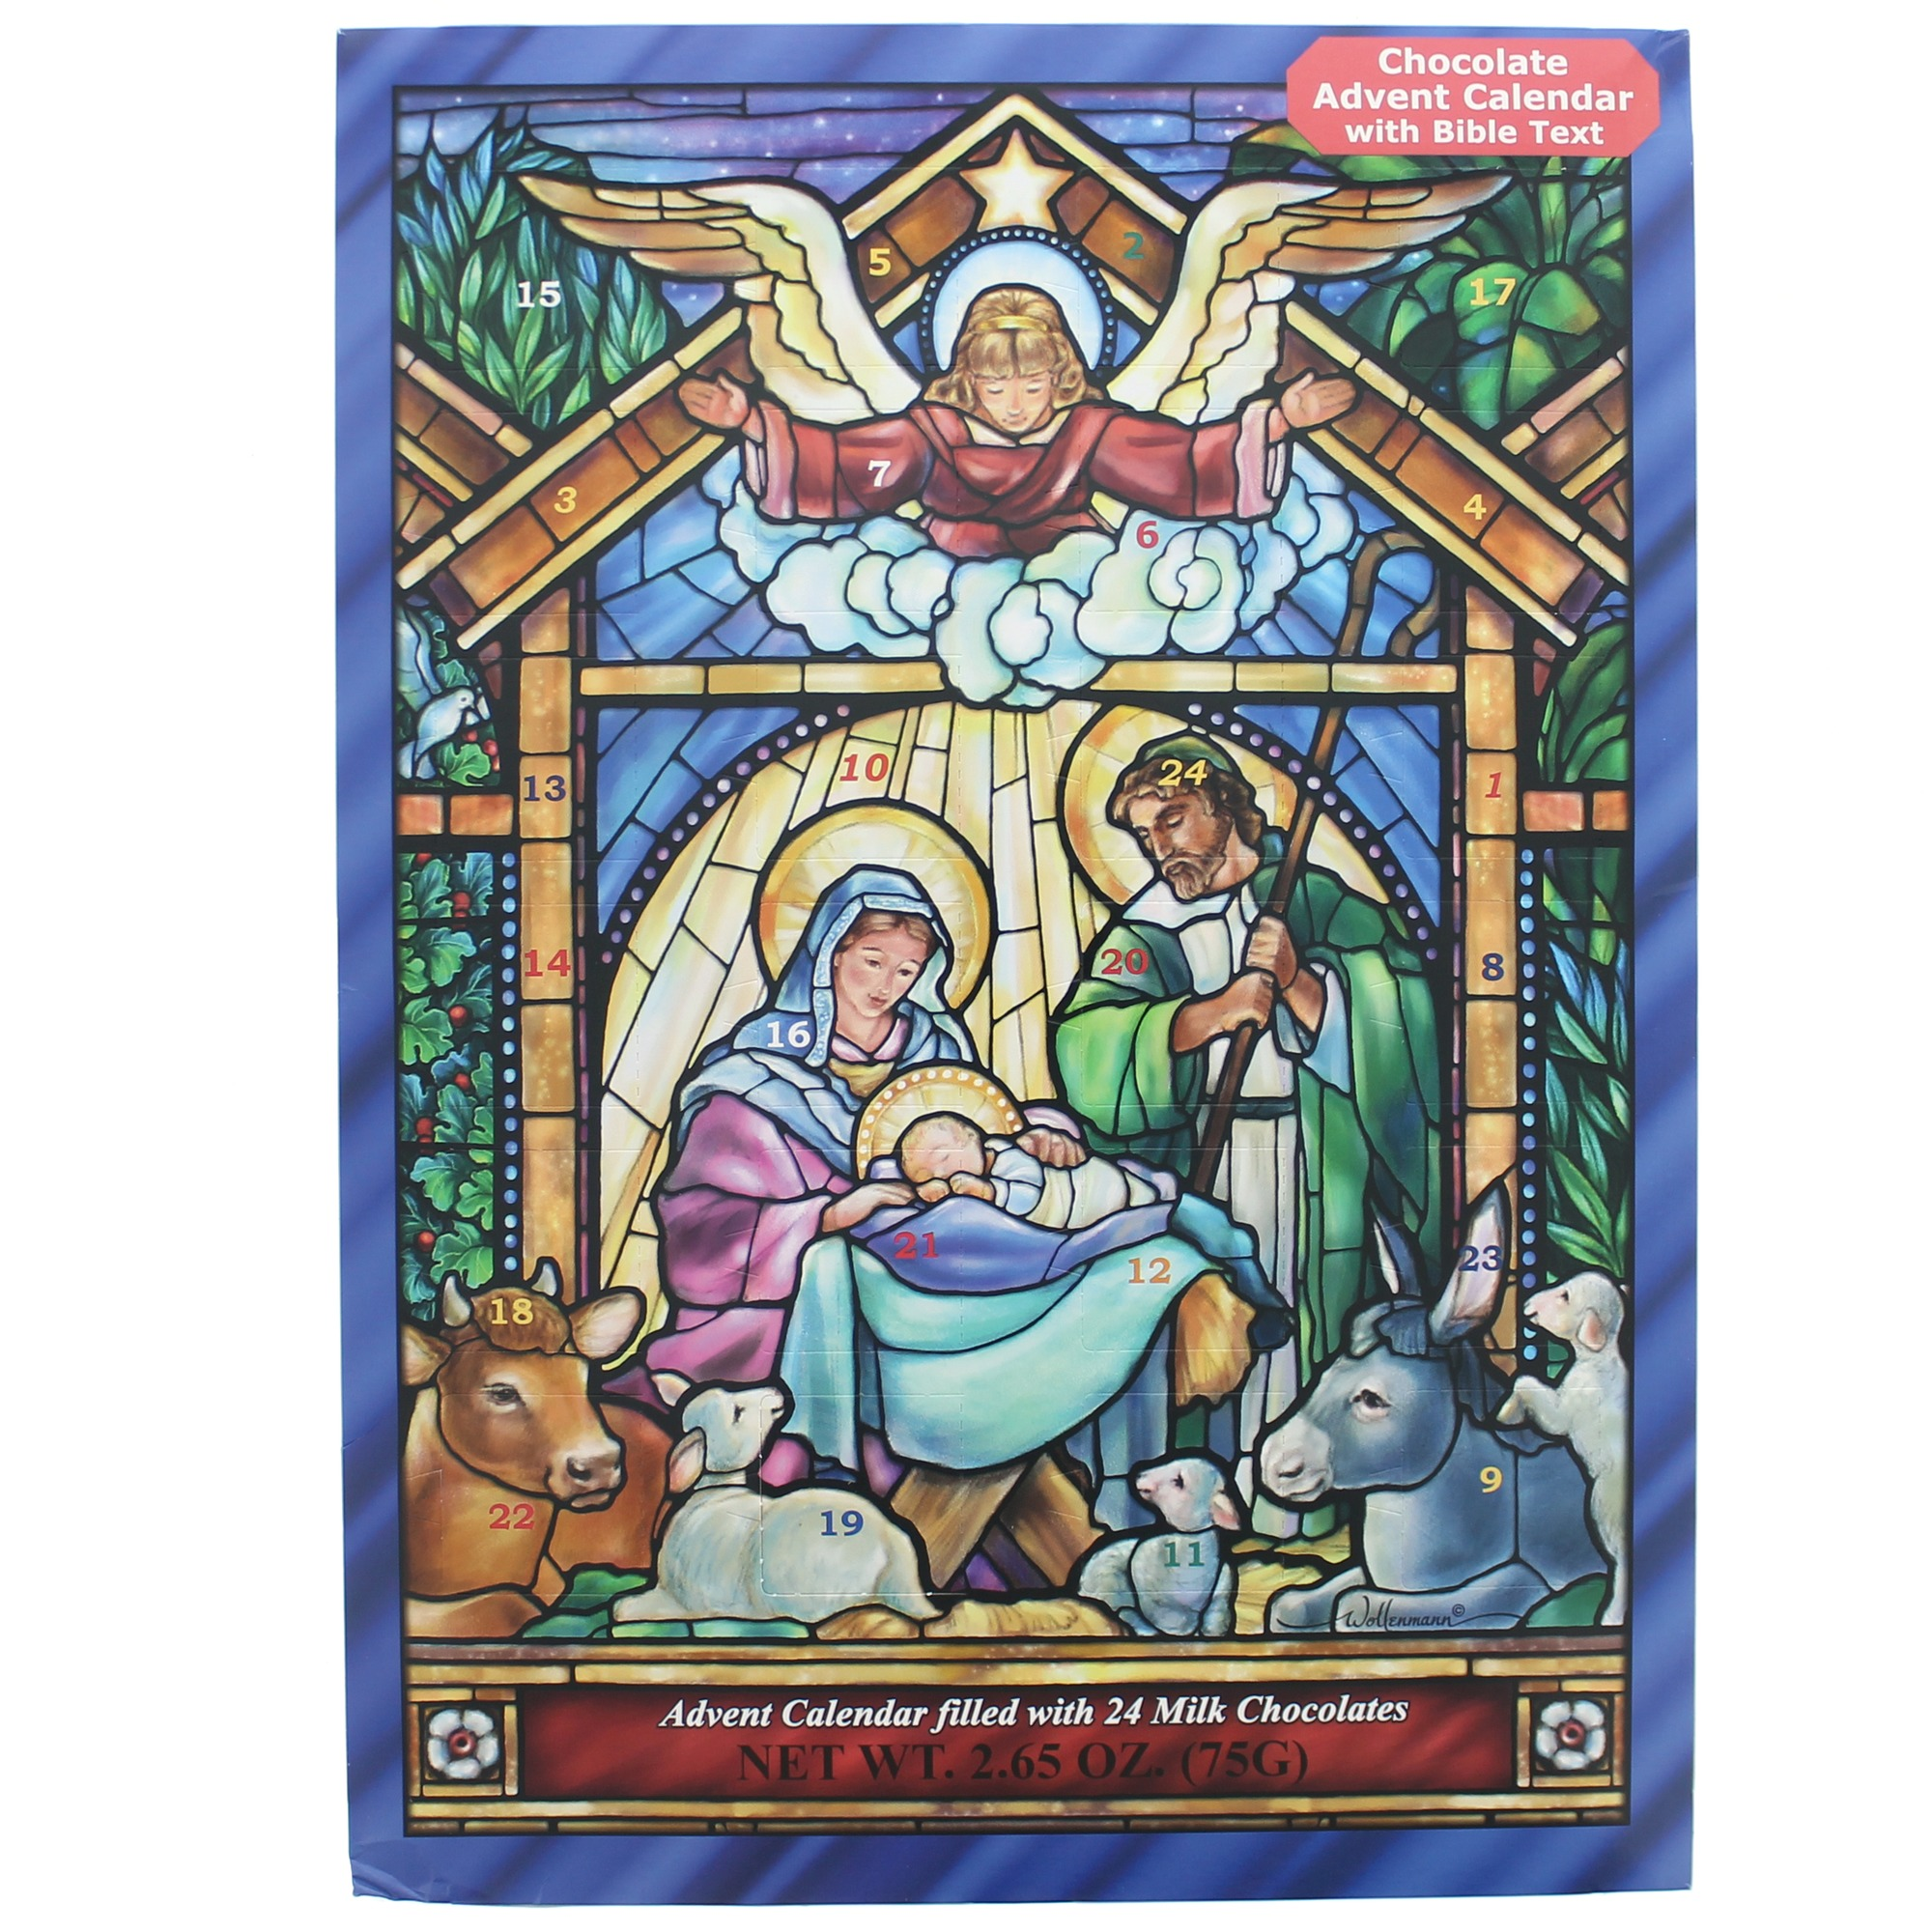 Stained Glass Nativity Advent Calendar with Chocolate   The ...